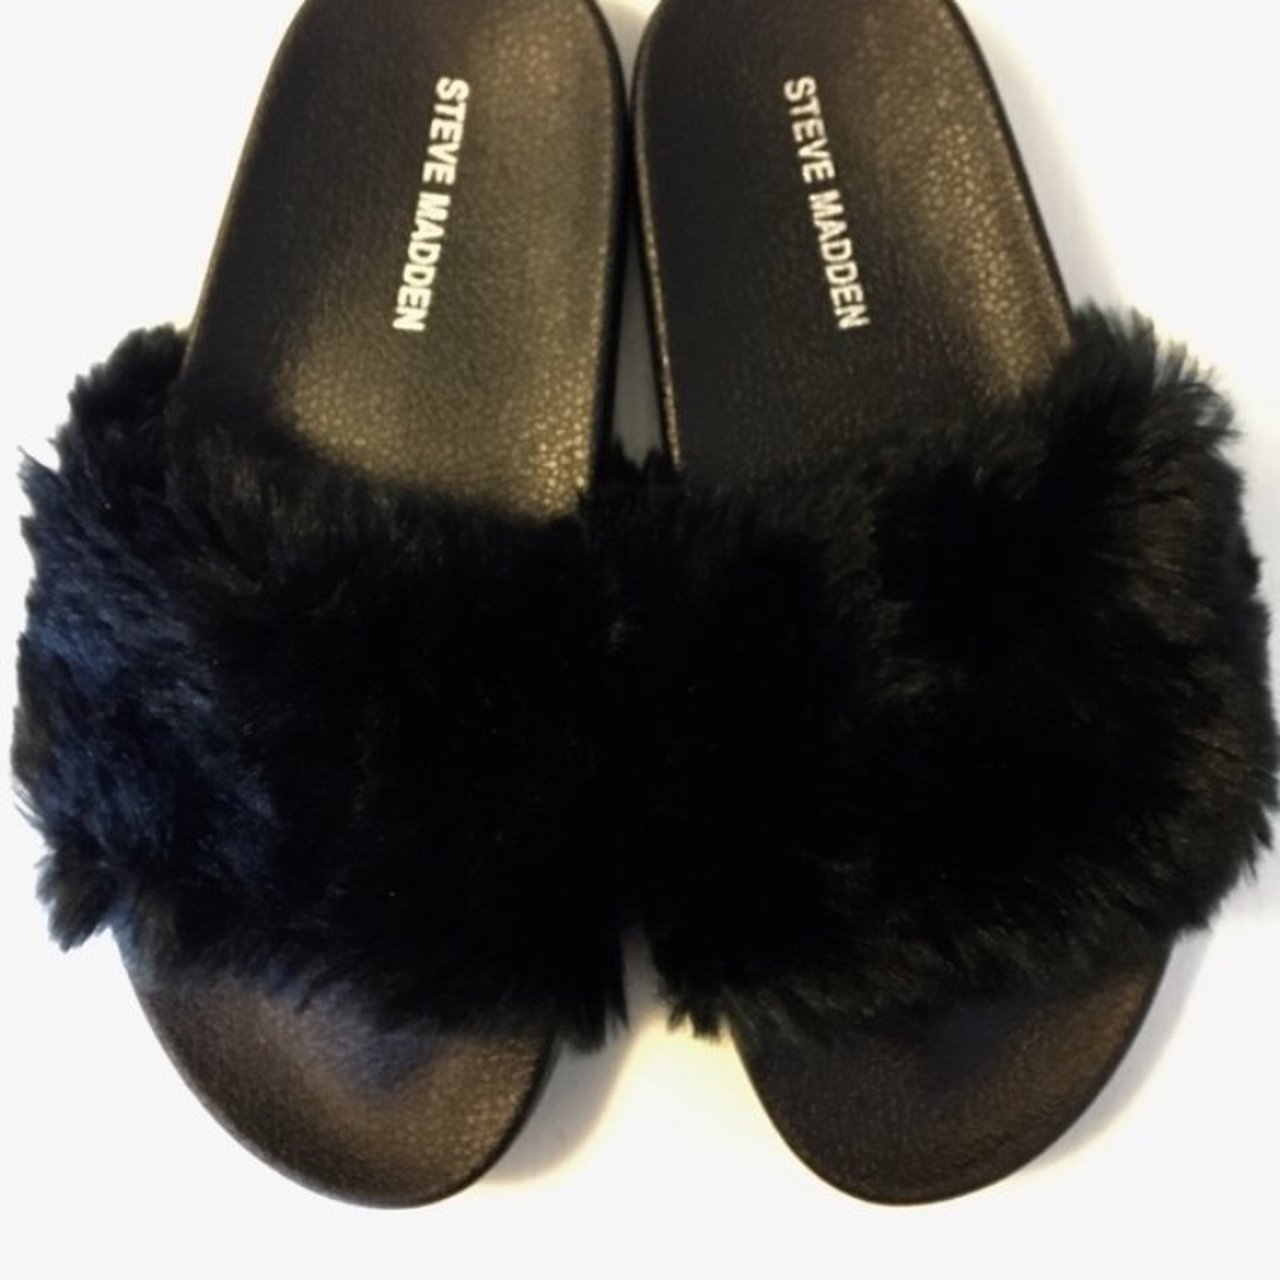 be4bac43c5e Black Steve Madden Faux furr slippers -Never been worn not - Depop